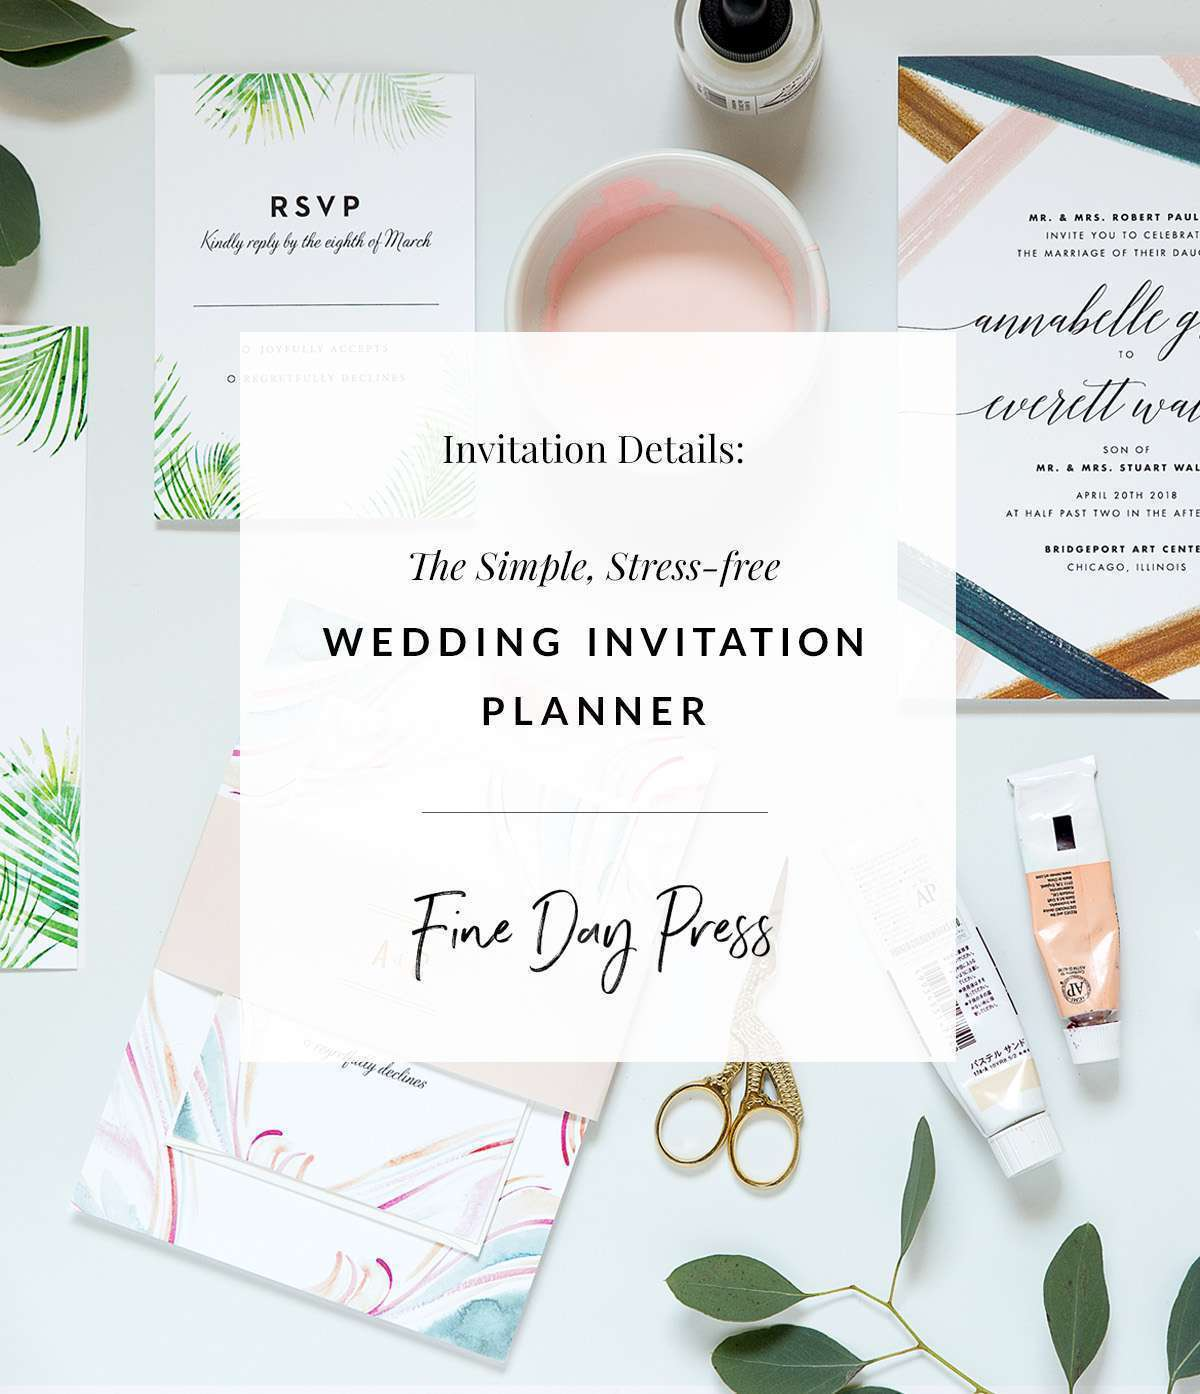 Story Guide To Wedding Invitation Wording: It's Here! Our Essential Guide To Wedding Invitations